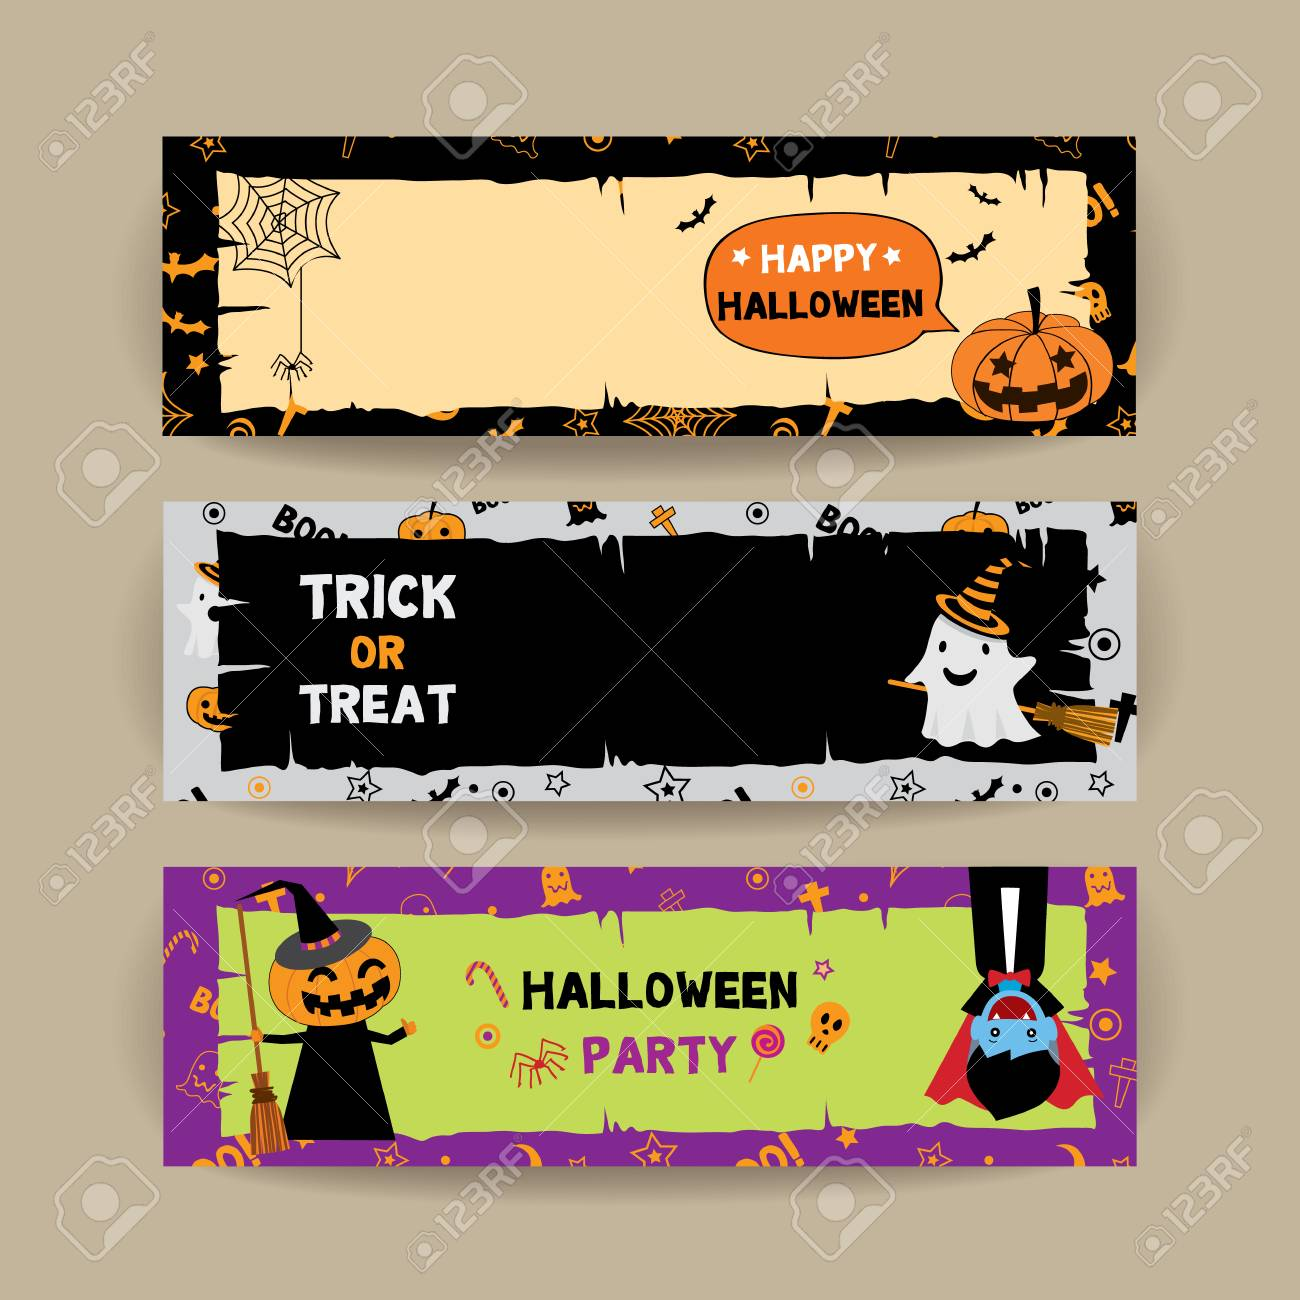 illustration vector banner set for happy halloween party template